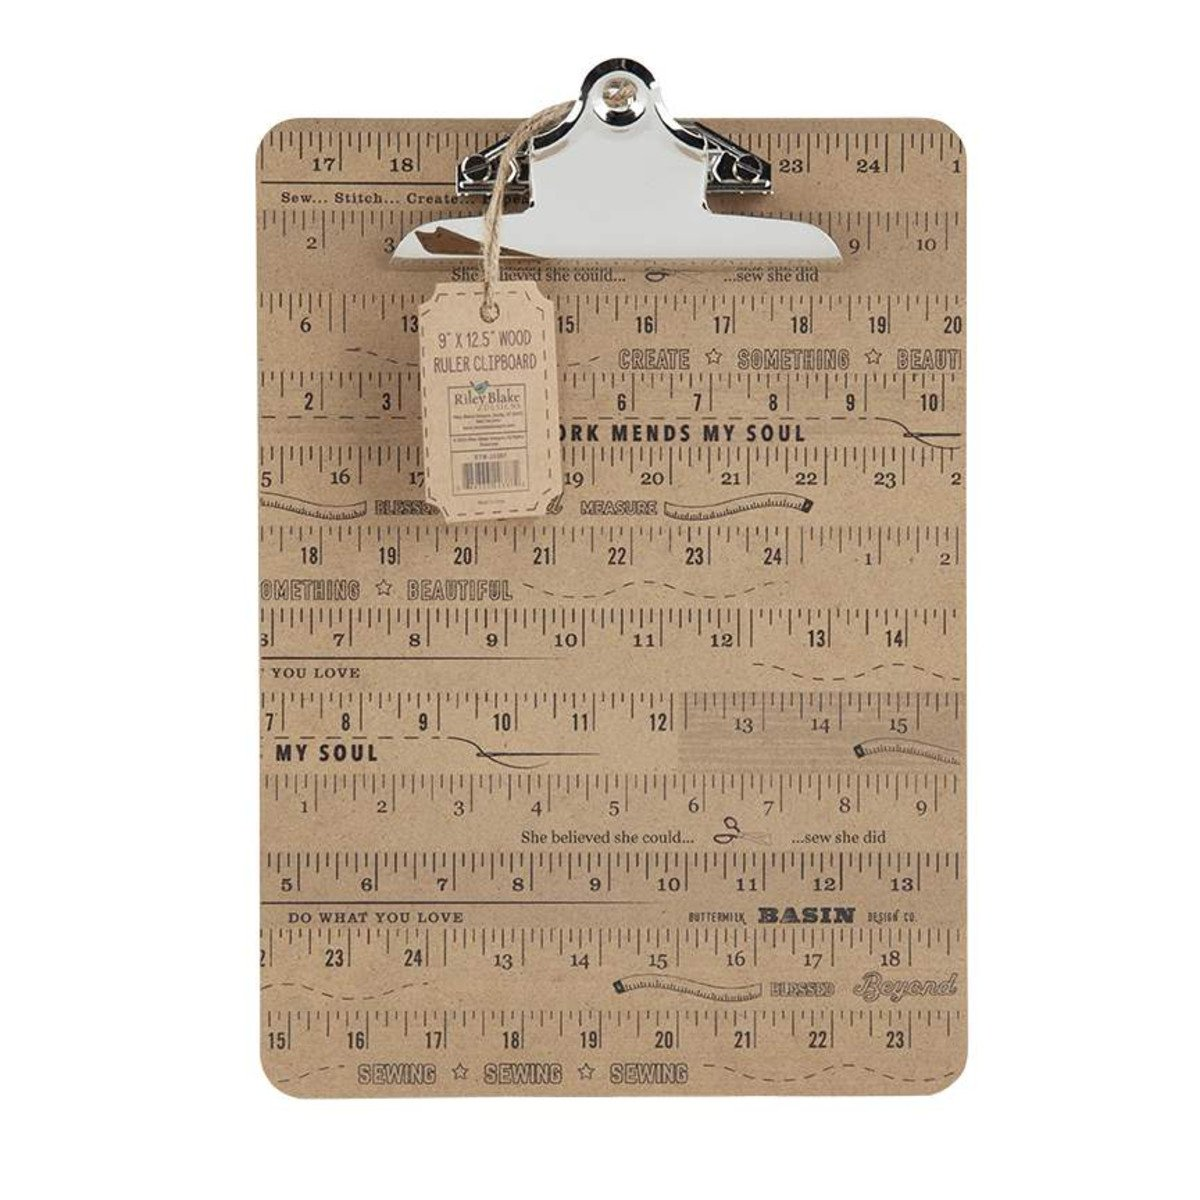 Stacy West | Buttermilk Basin Wood Ruler Clipboard Large ST-20387